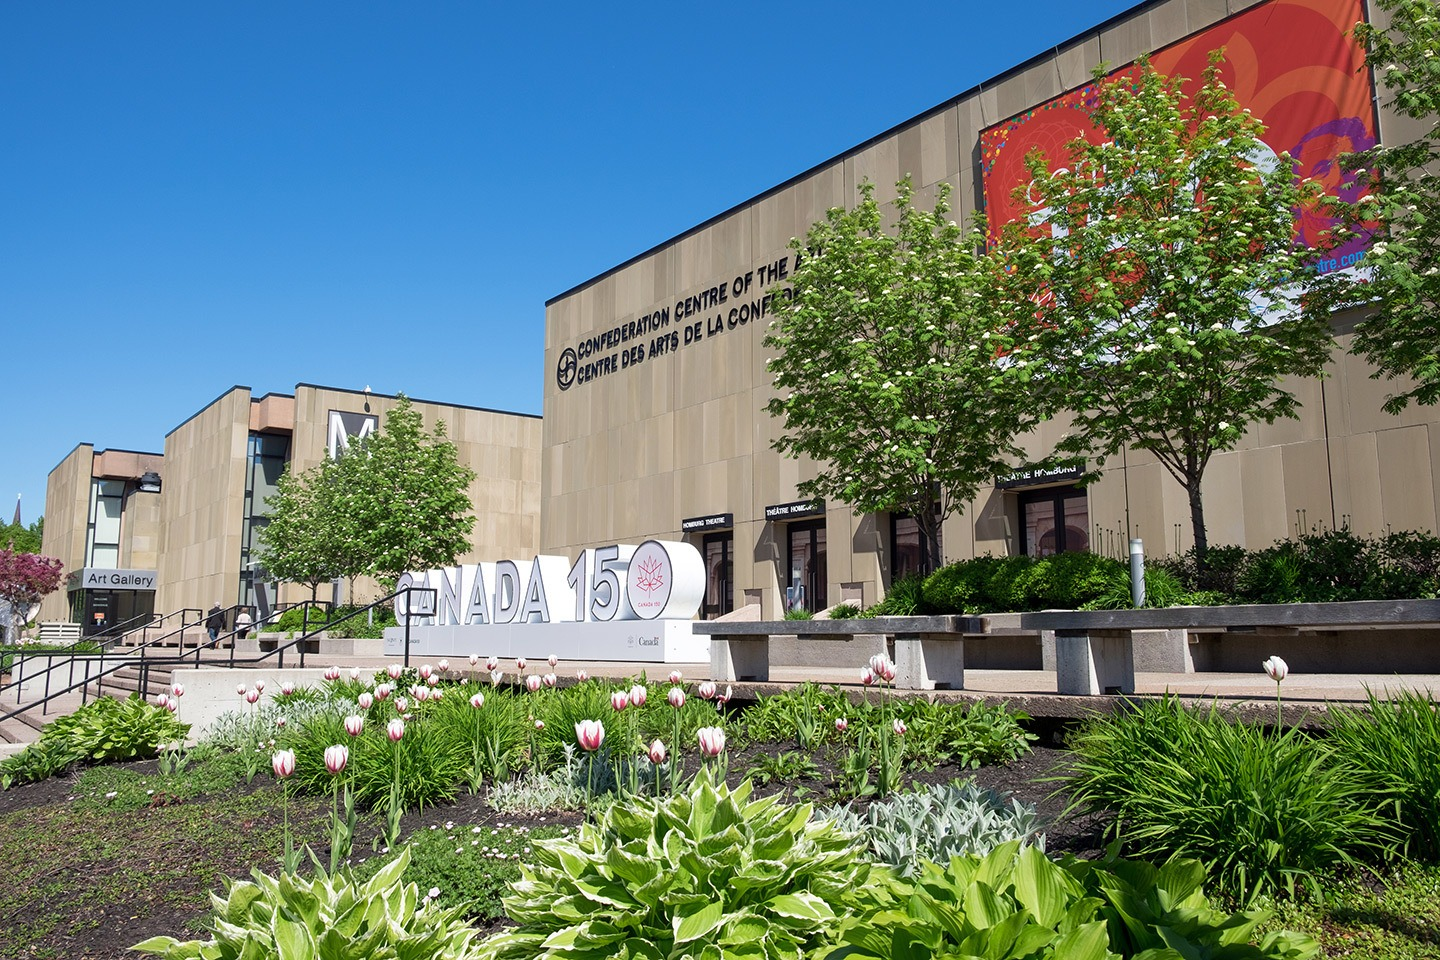 Confederation Centre of the Arts,Charlottetown, Prince Edward Island, Canada